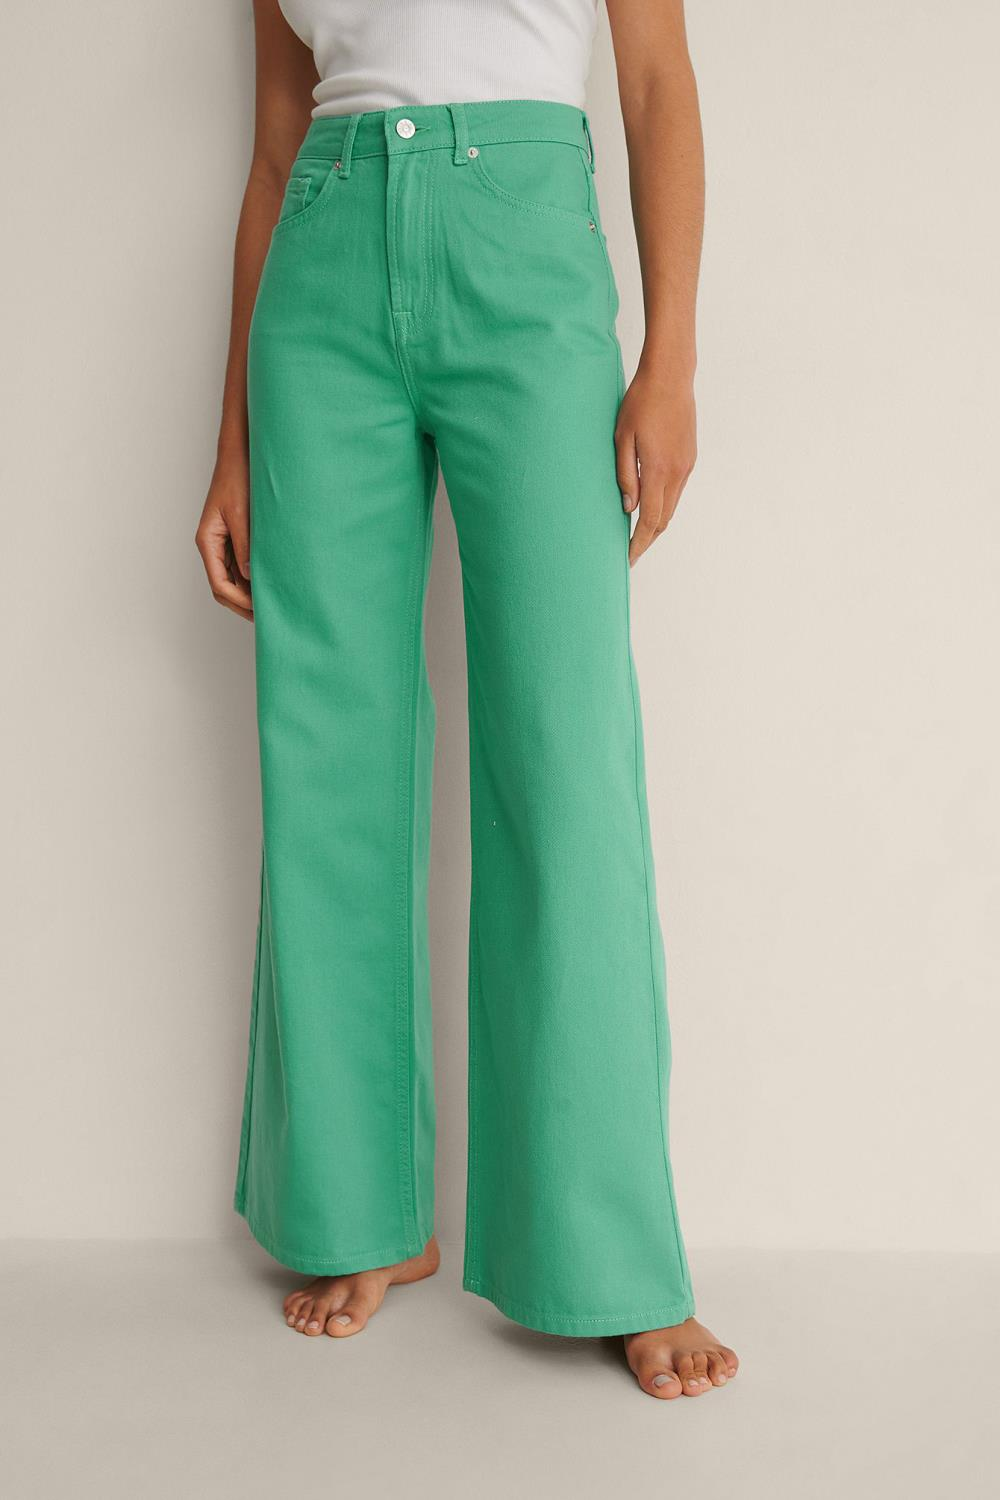 NA-KD colored soft rigid wide jeans, green